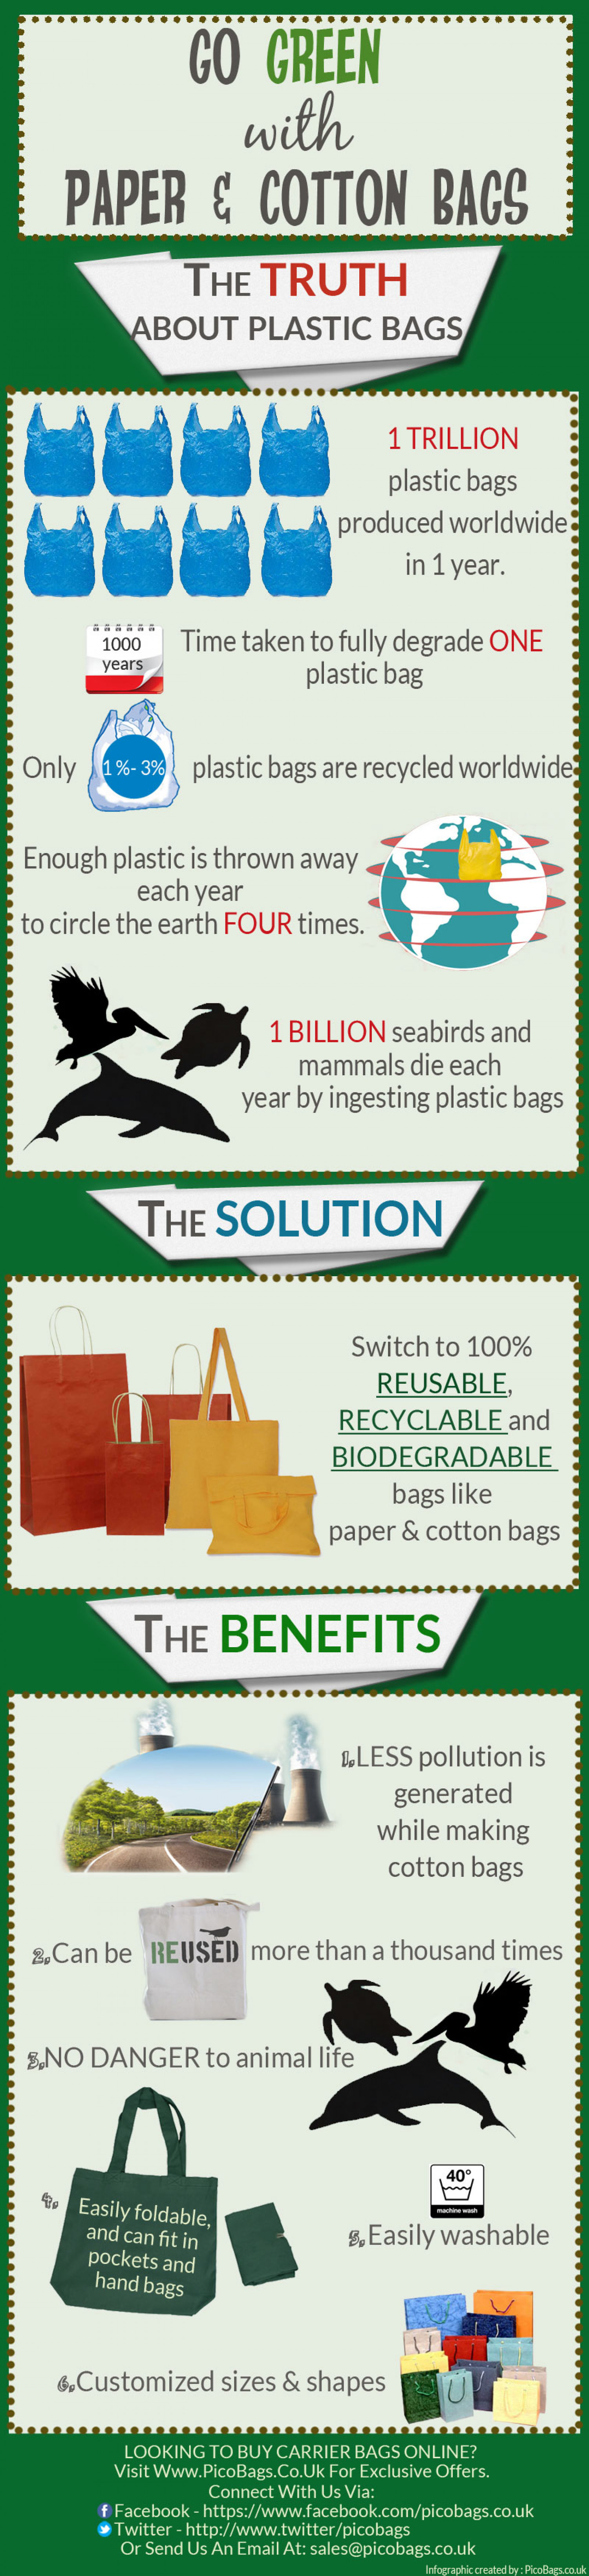 Tips to Go Green With Reusable Cotton Carrier Bags Infographic